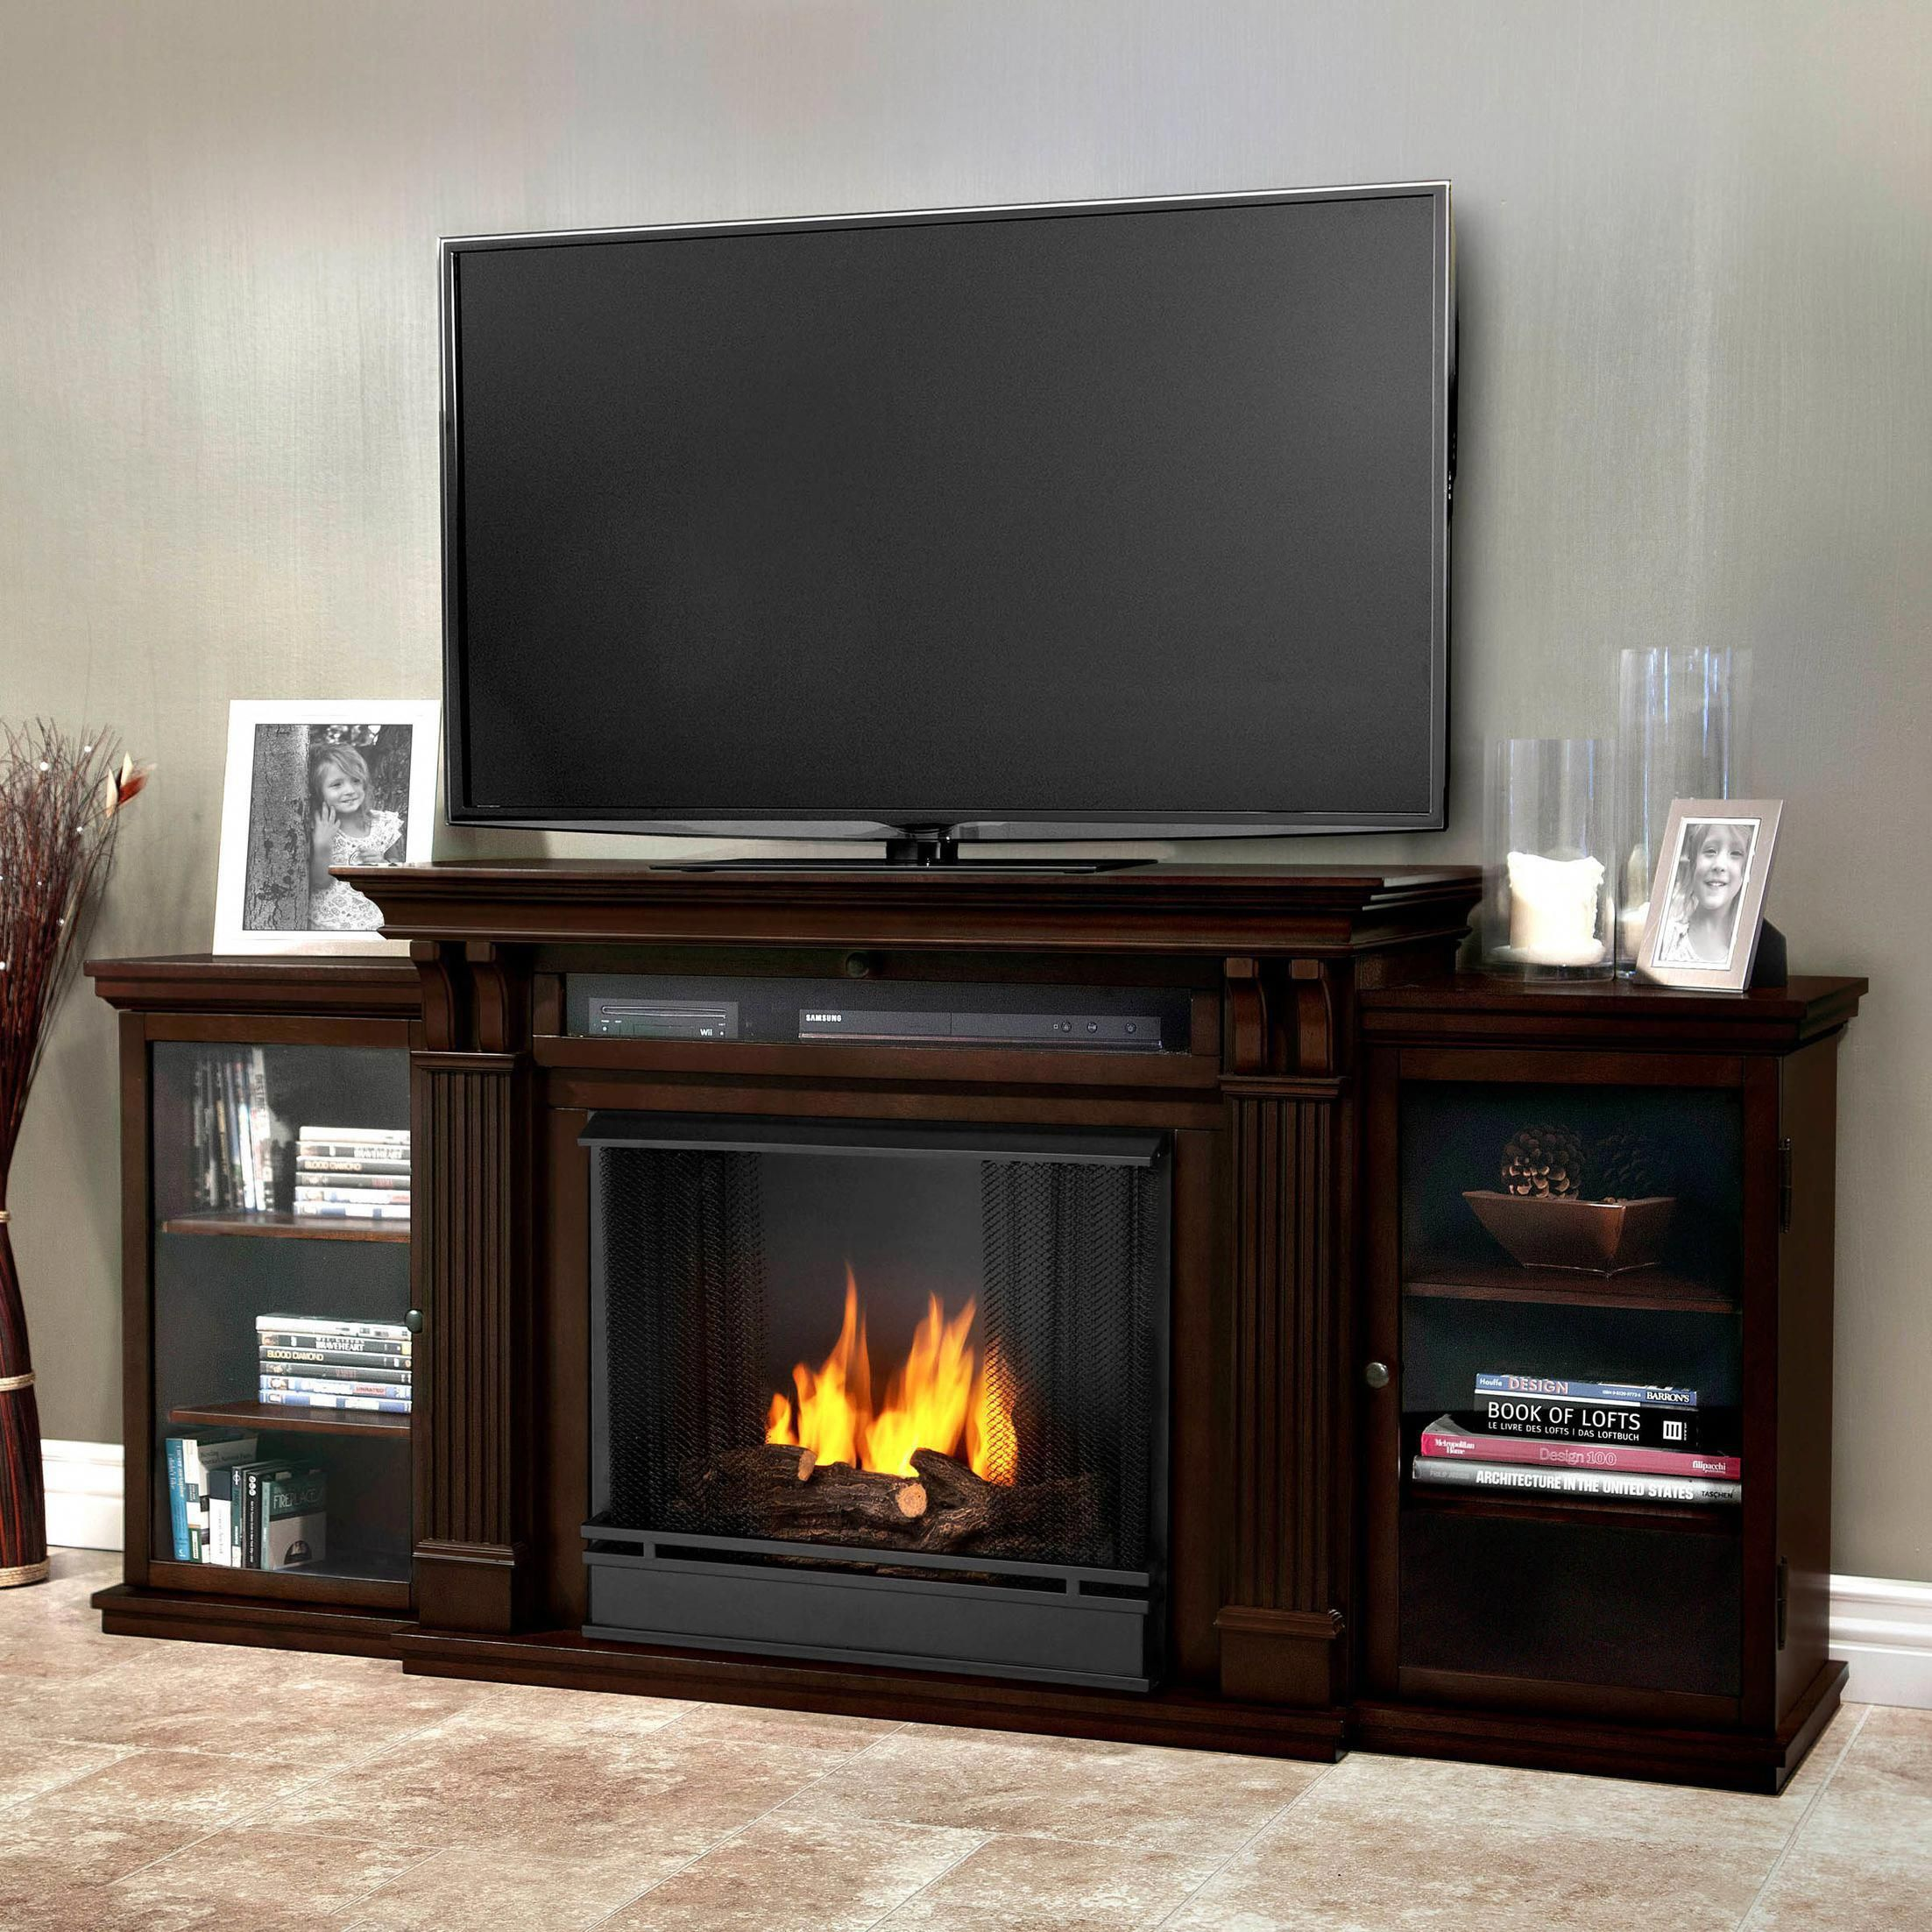 "Ashley Furniture Tv Stand with Fireplace Luxury Calie Tv Stand ""tvstanddiy"""